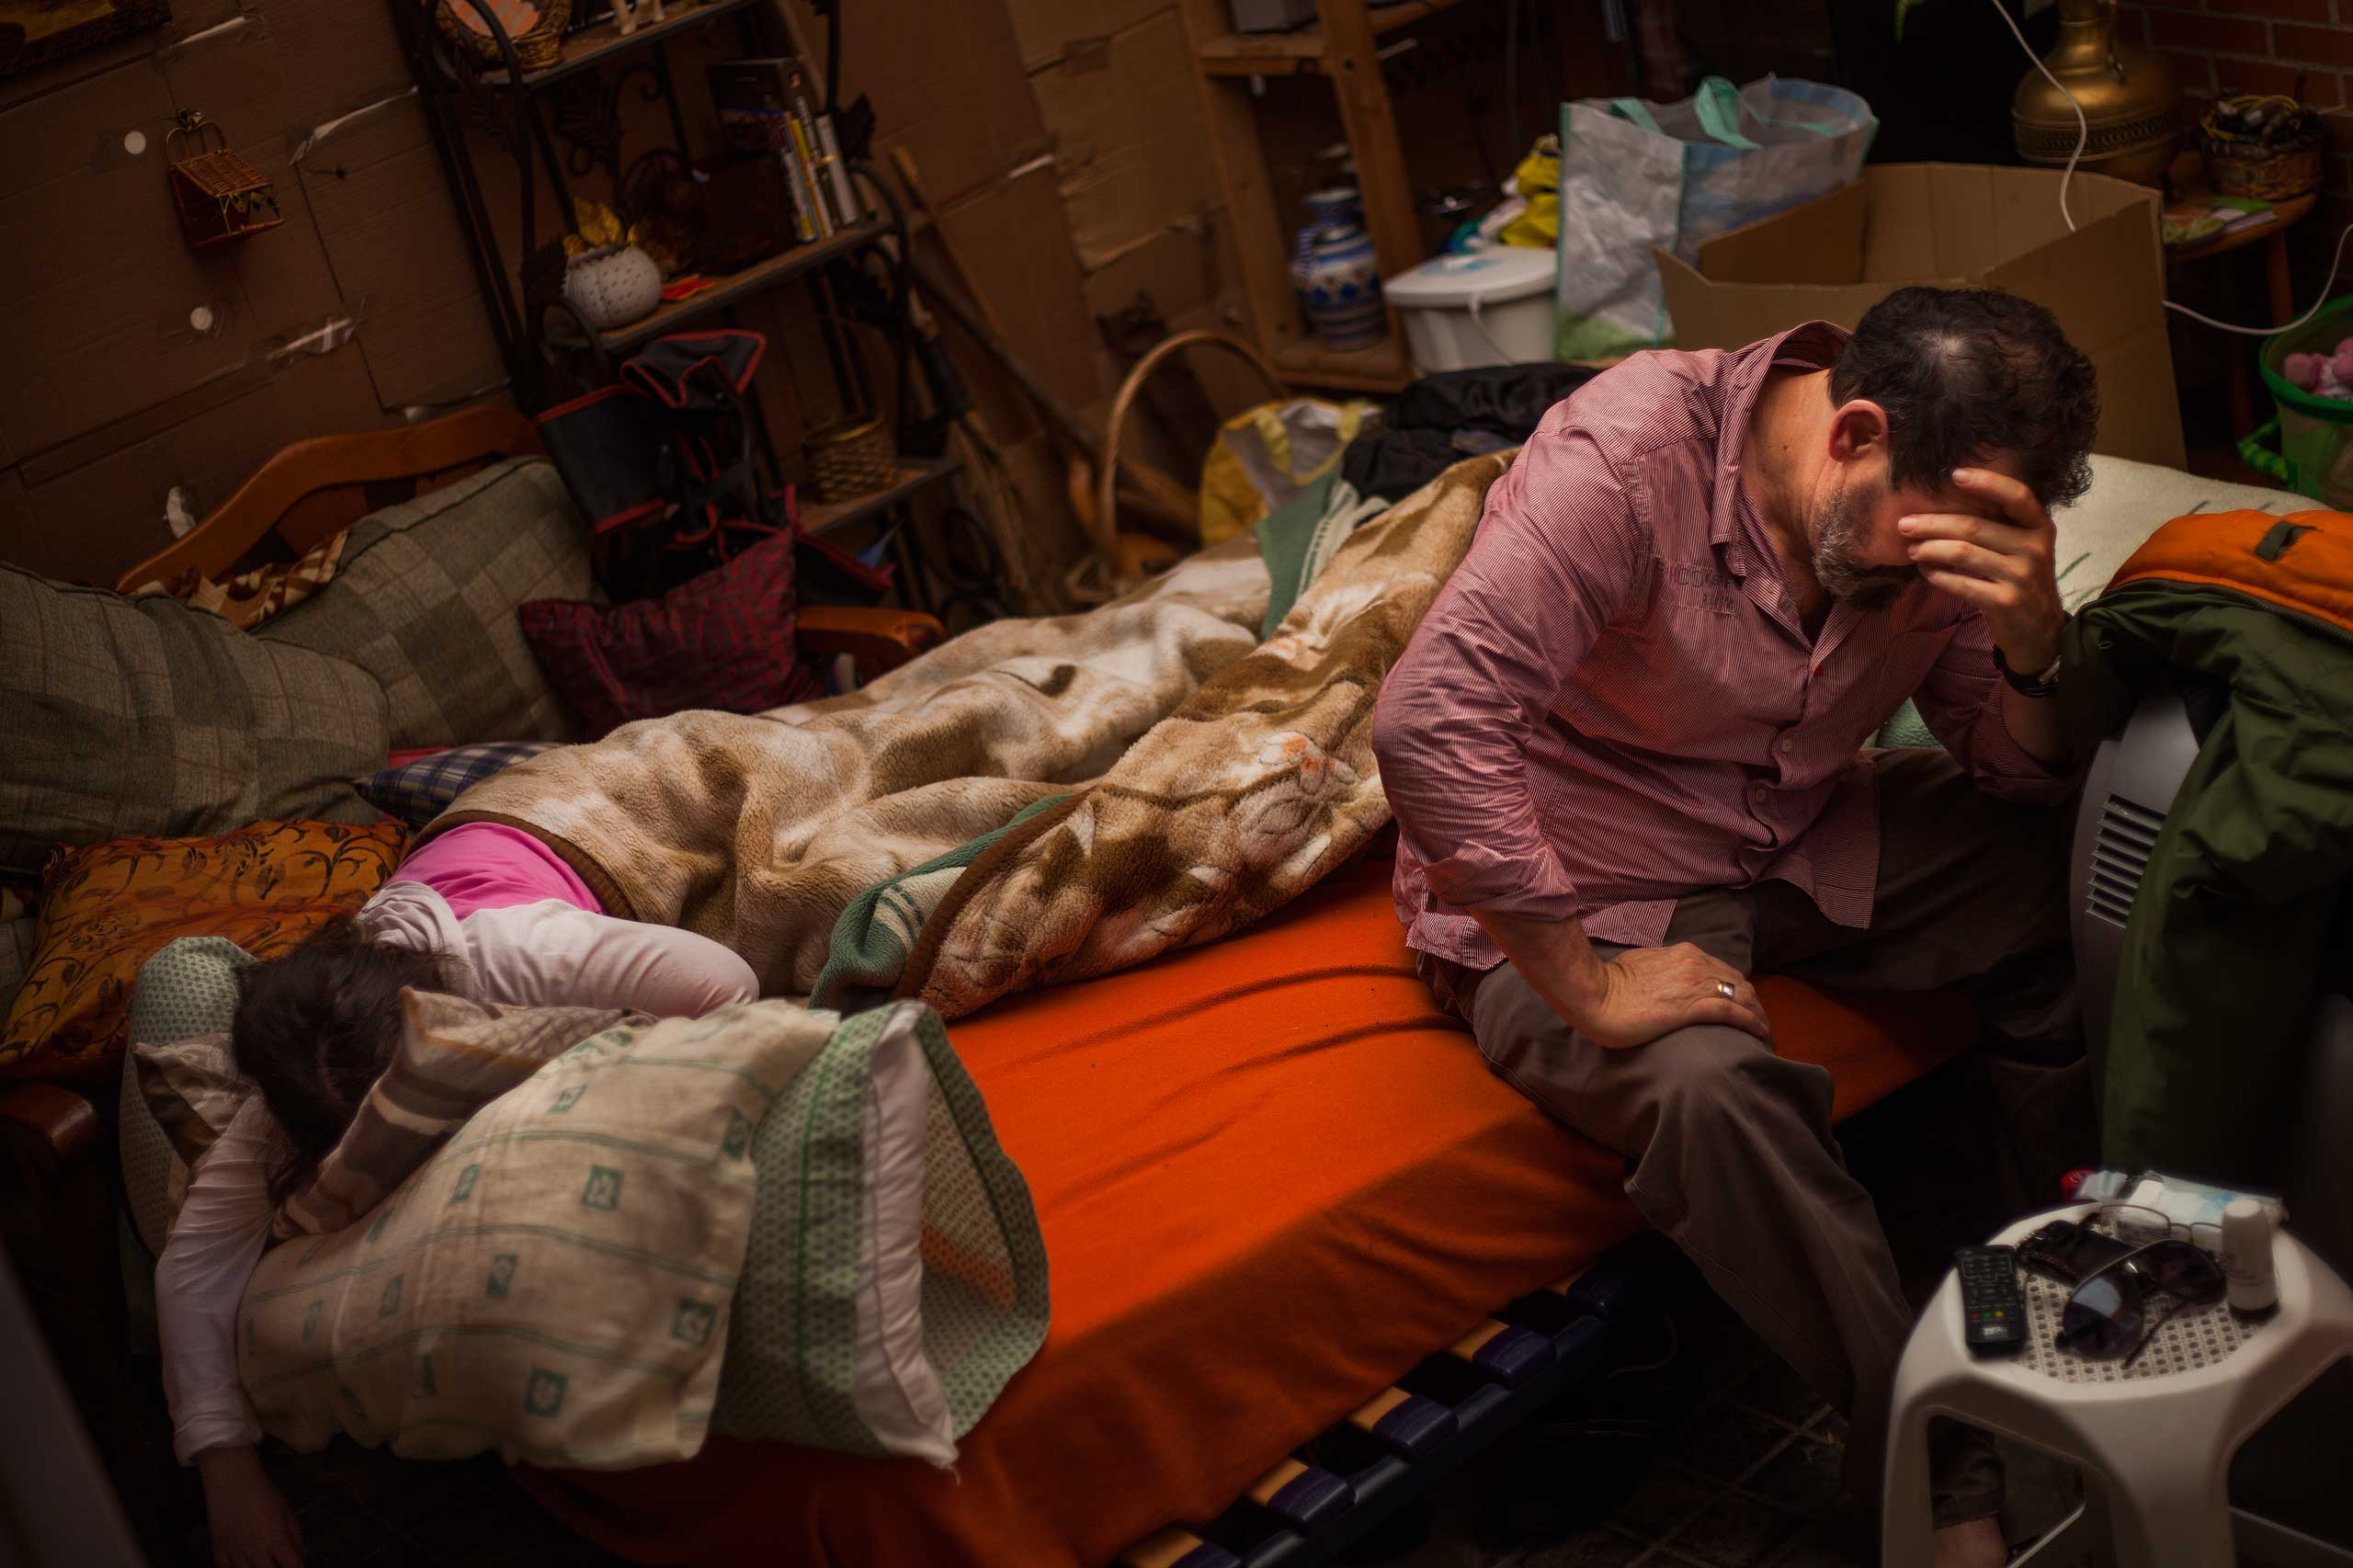 Benigno Ferrer, 59, gestures beside his daughter Maria Isabel Ferrer Rodriguez, 8, as they wake up outside the apartment from which they got evicted in Madrid. Oct. 2013.